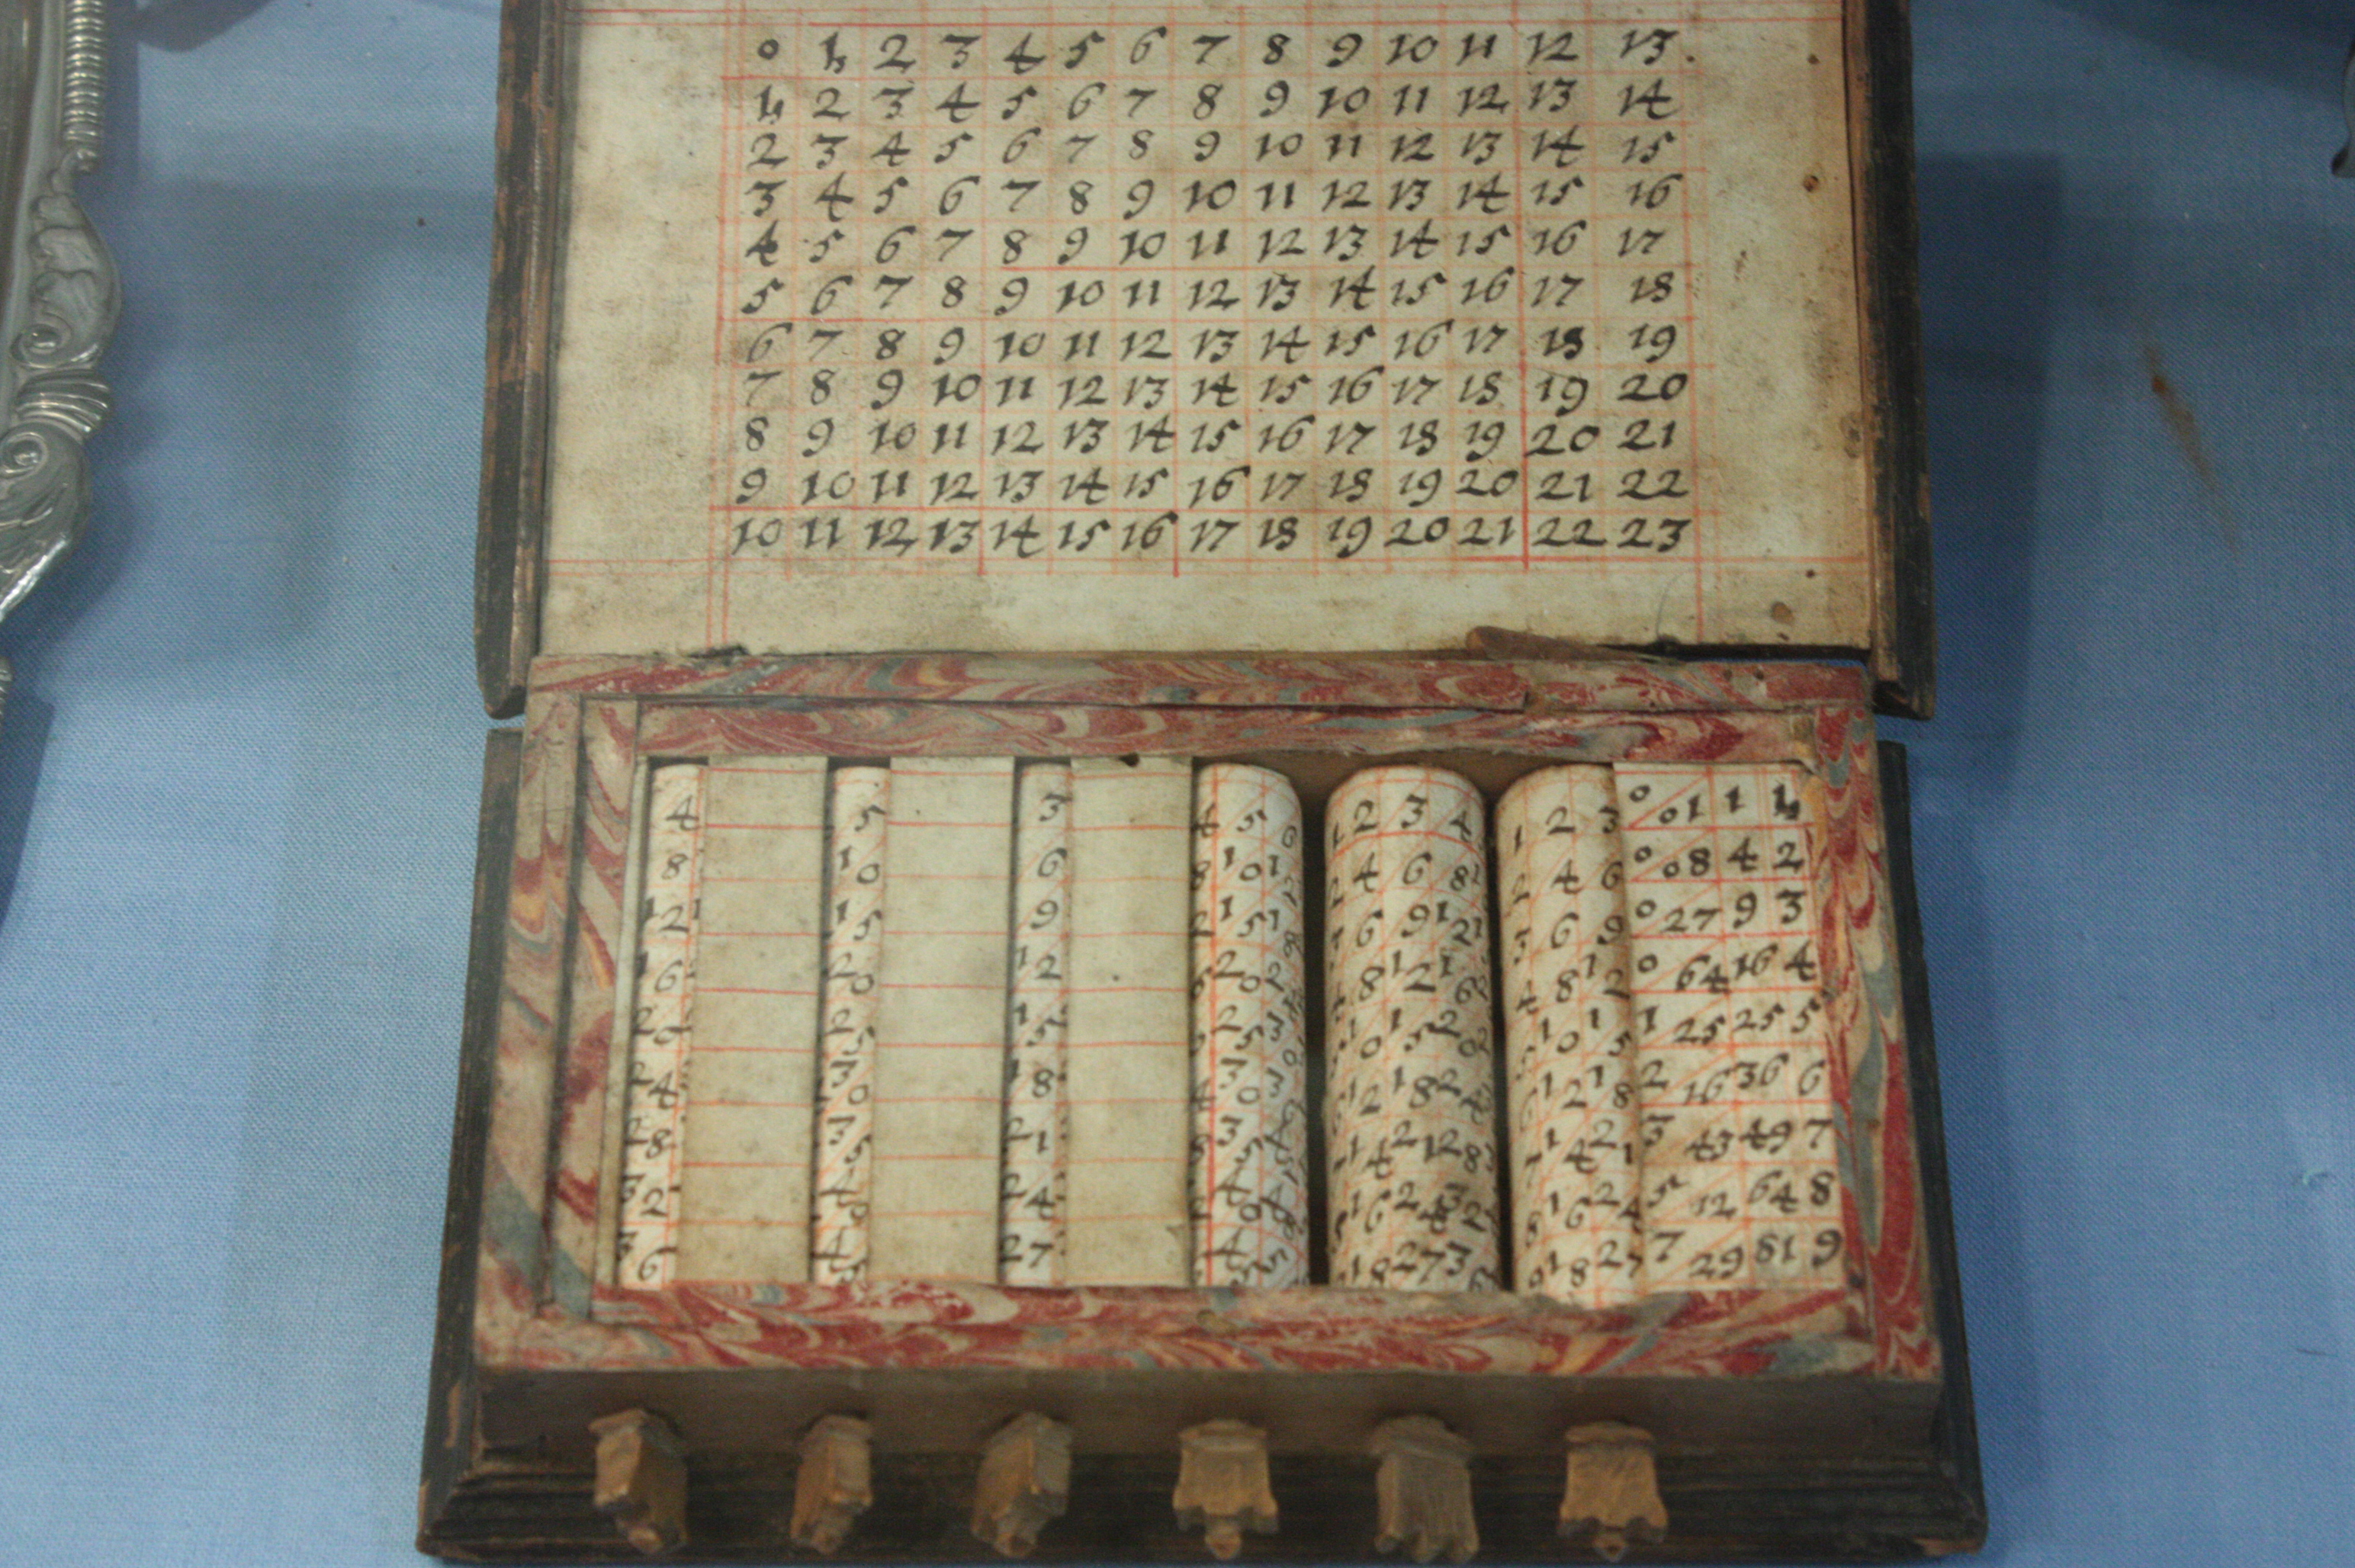 Multiplication Chart To 100: Napier7s bones - Wikipedia,Chart